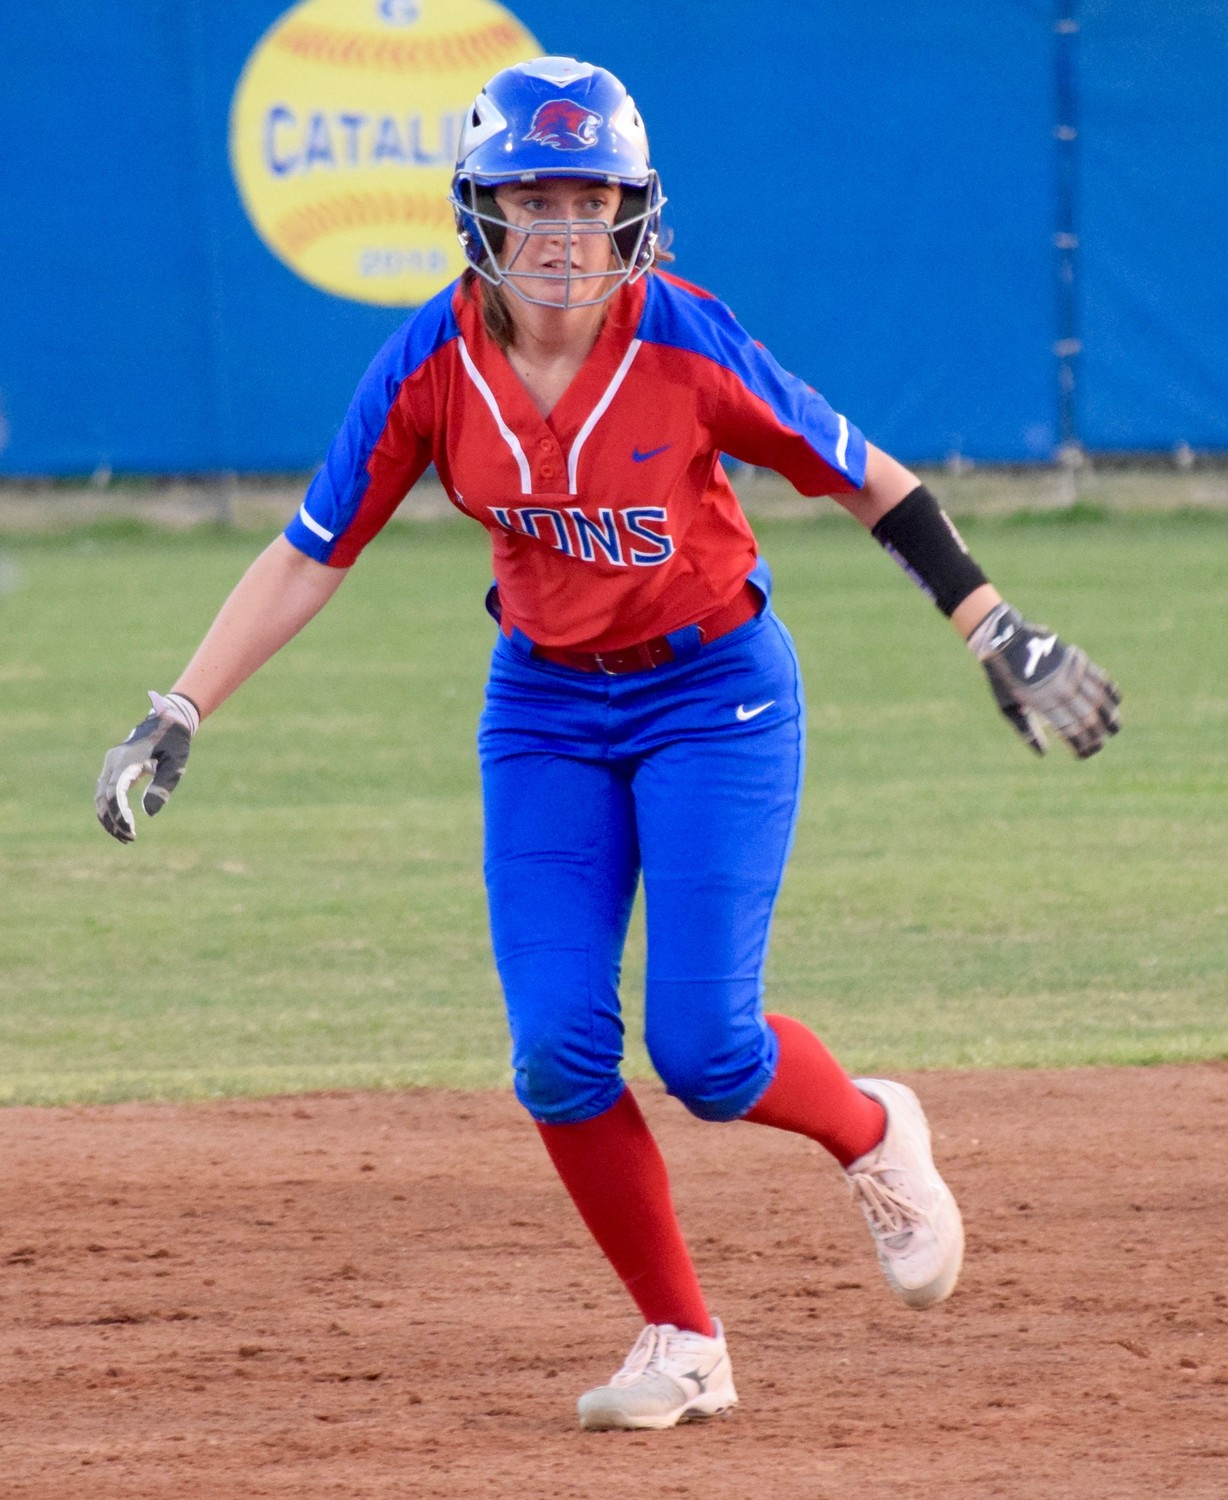 Addy Brown and Leander beat Westlake 8-5 on Tuesday night to clinch a spot in the postseason.